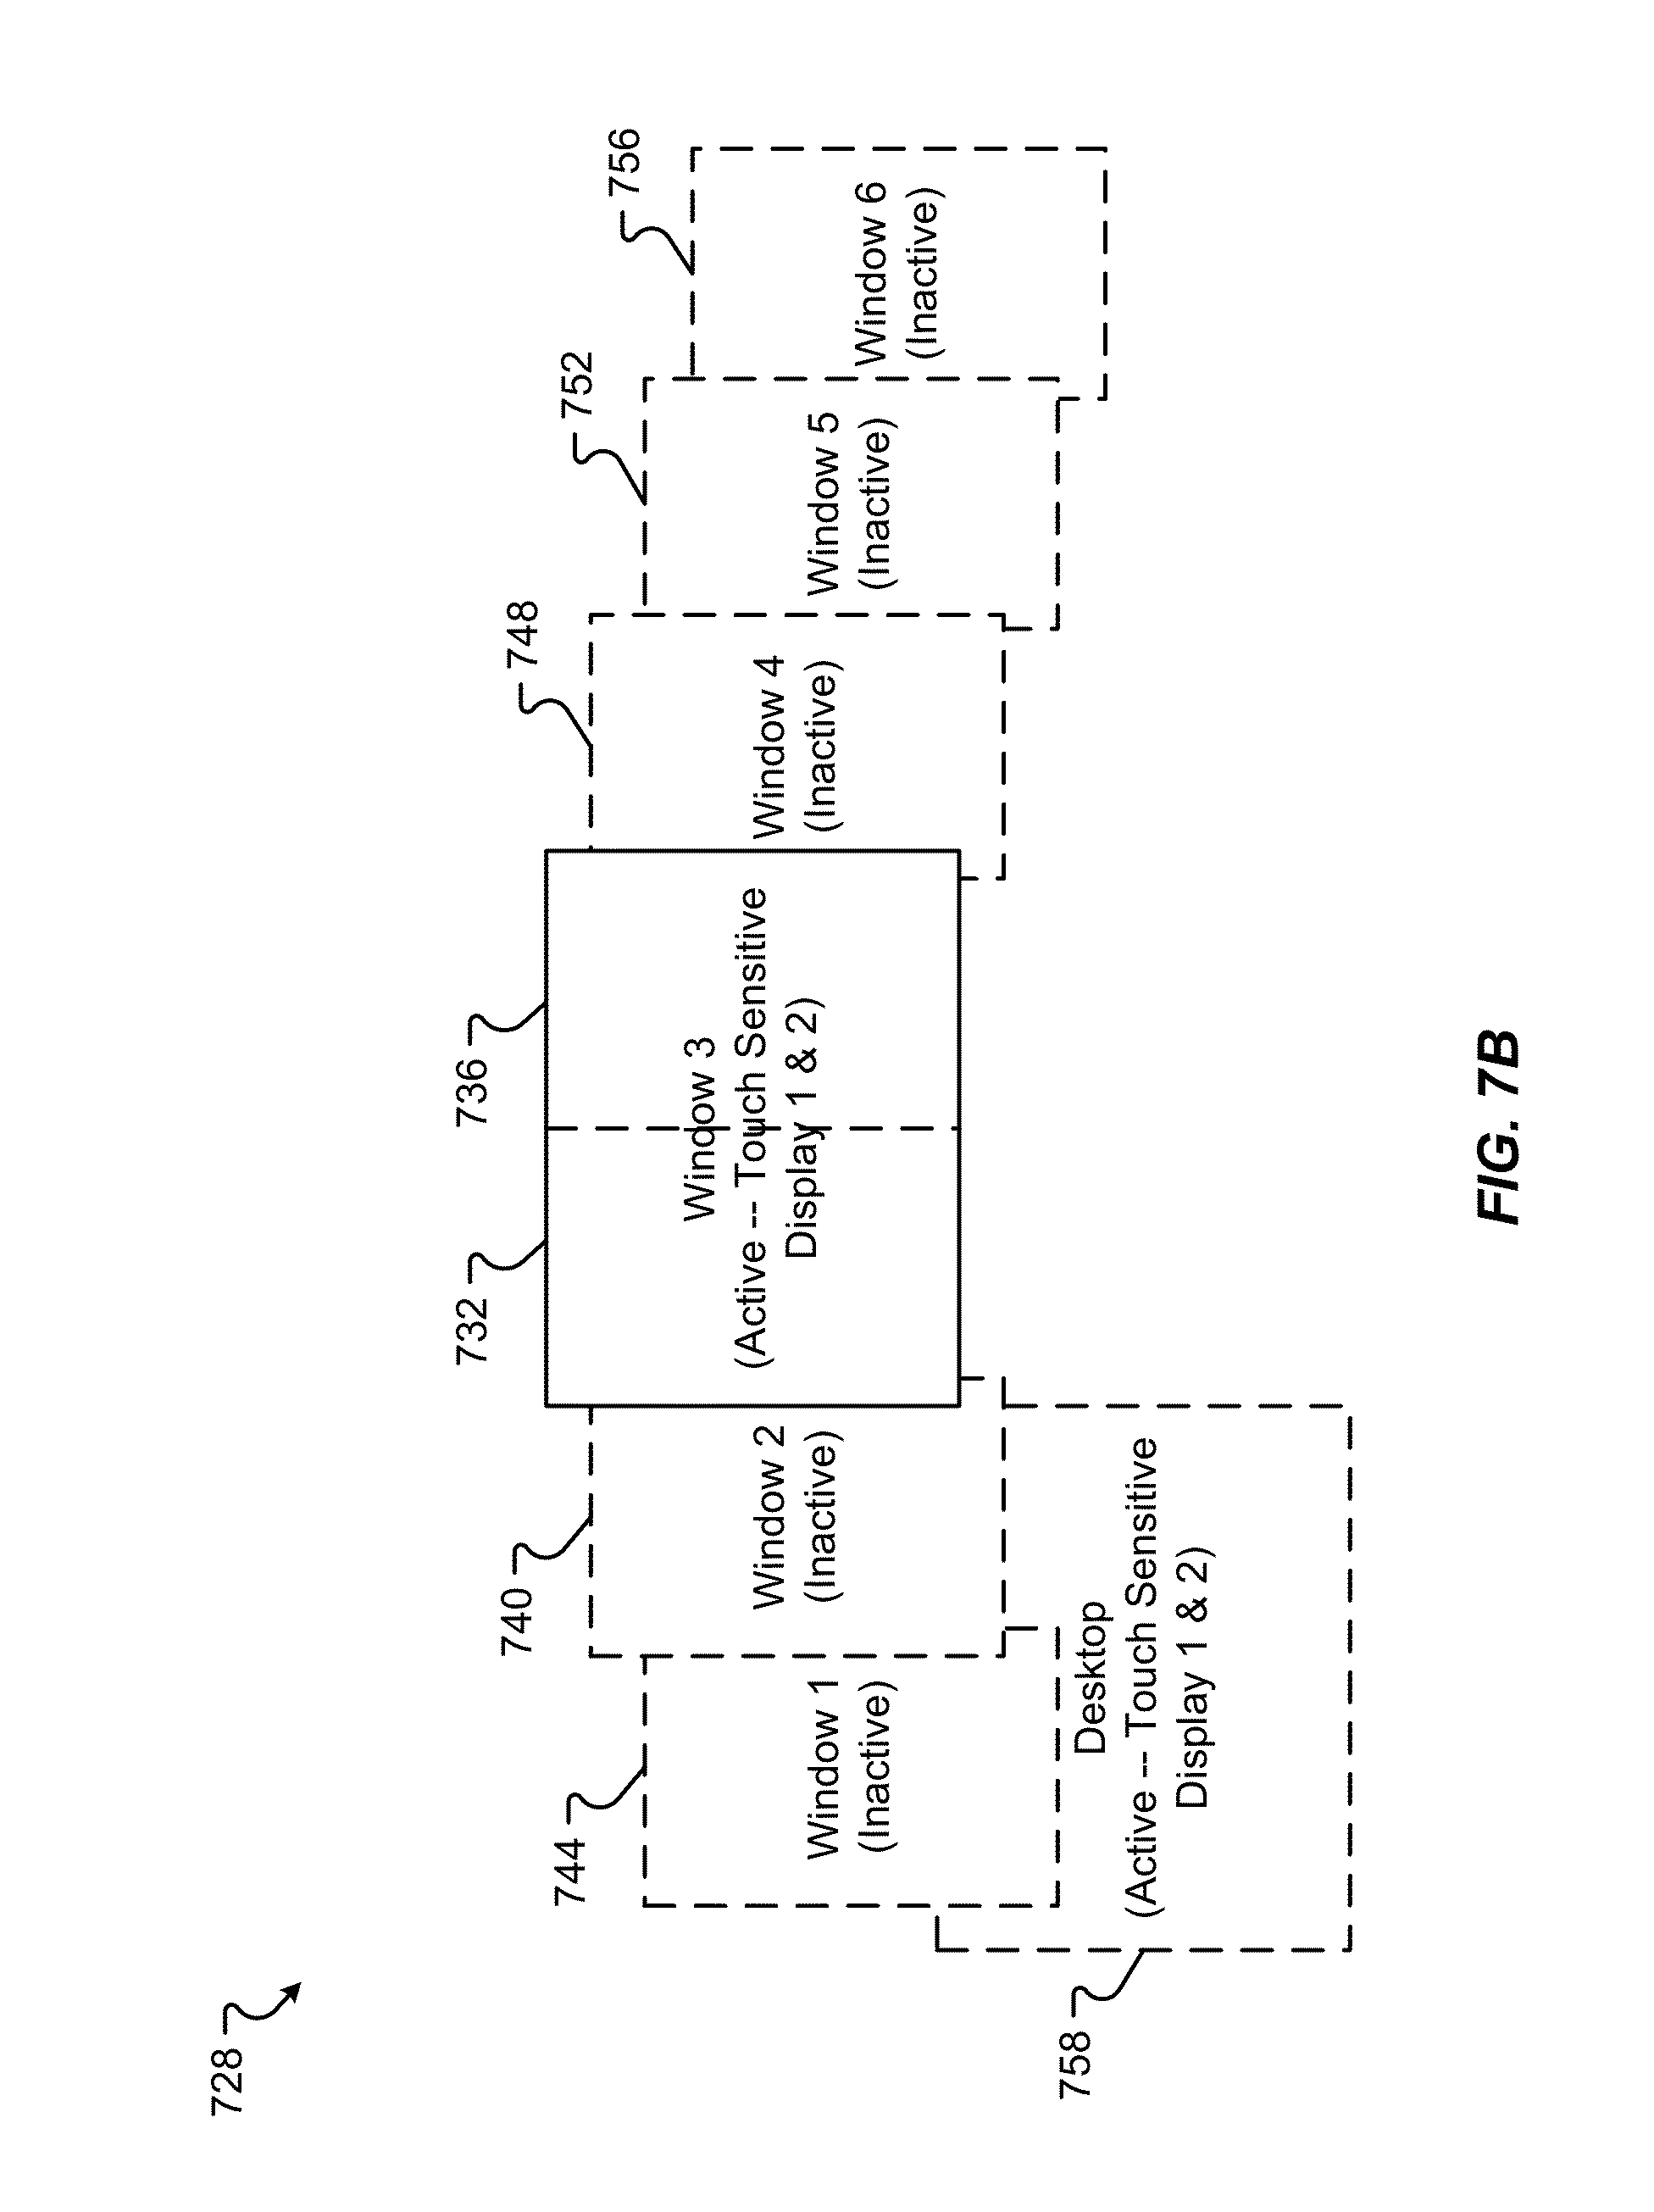 Patent Us 8872727 B2 Audio Amplifier Circuitresize By Dragging With The Right Mouse Button Images